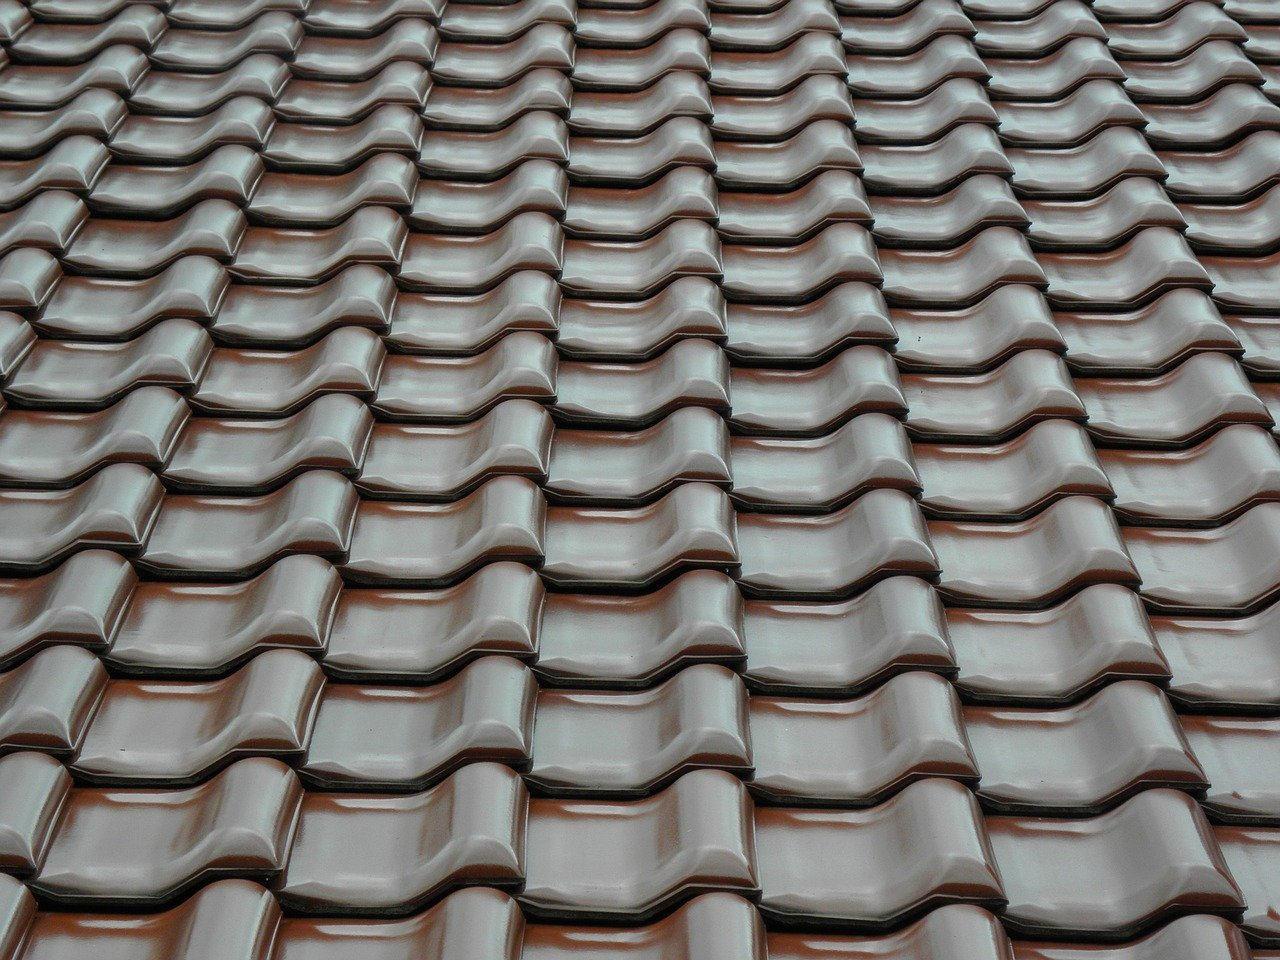 image - Why is Roofing So Expensive